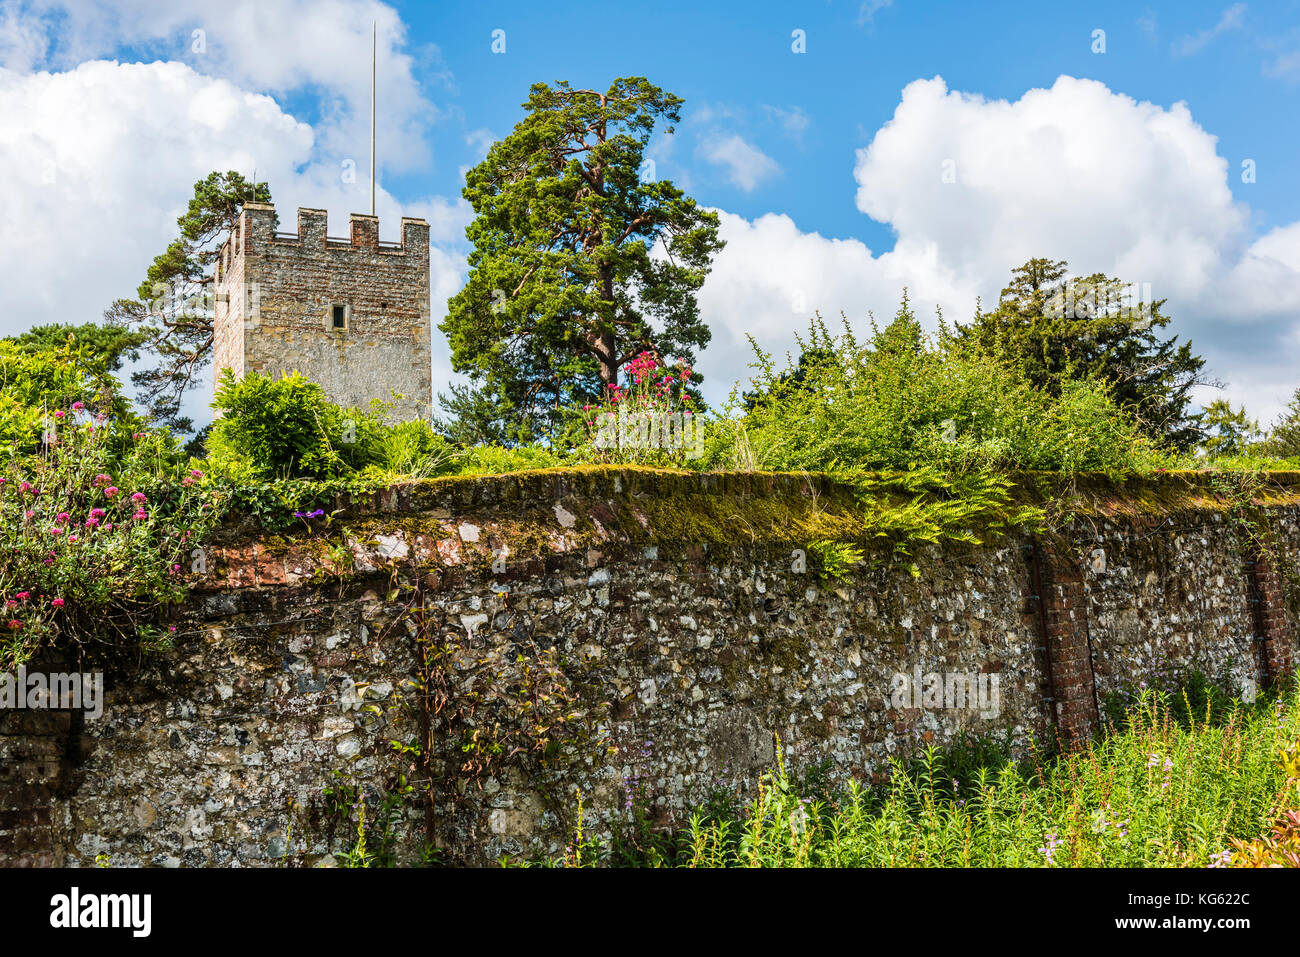 Great Tower and walled garden, Greys Court, Oxfordshire, UK - Stock Image